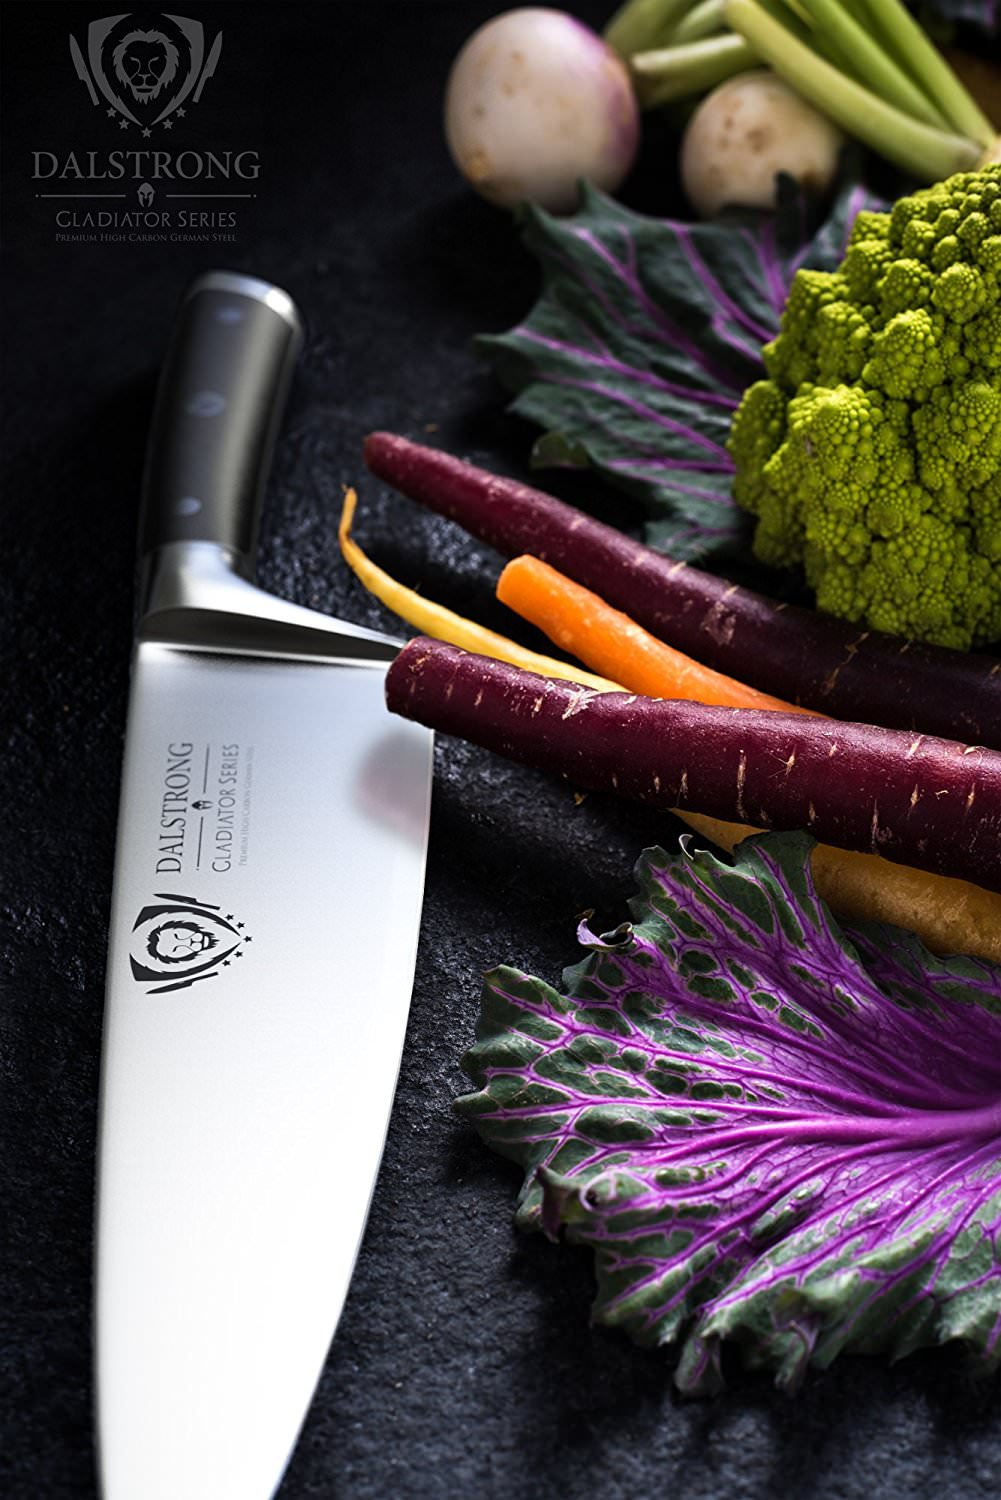 Dalstrong Gladiator 8 Chef Knives42